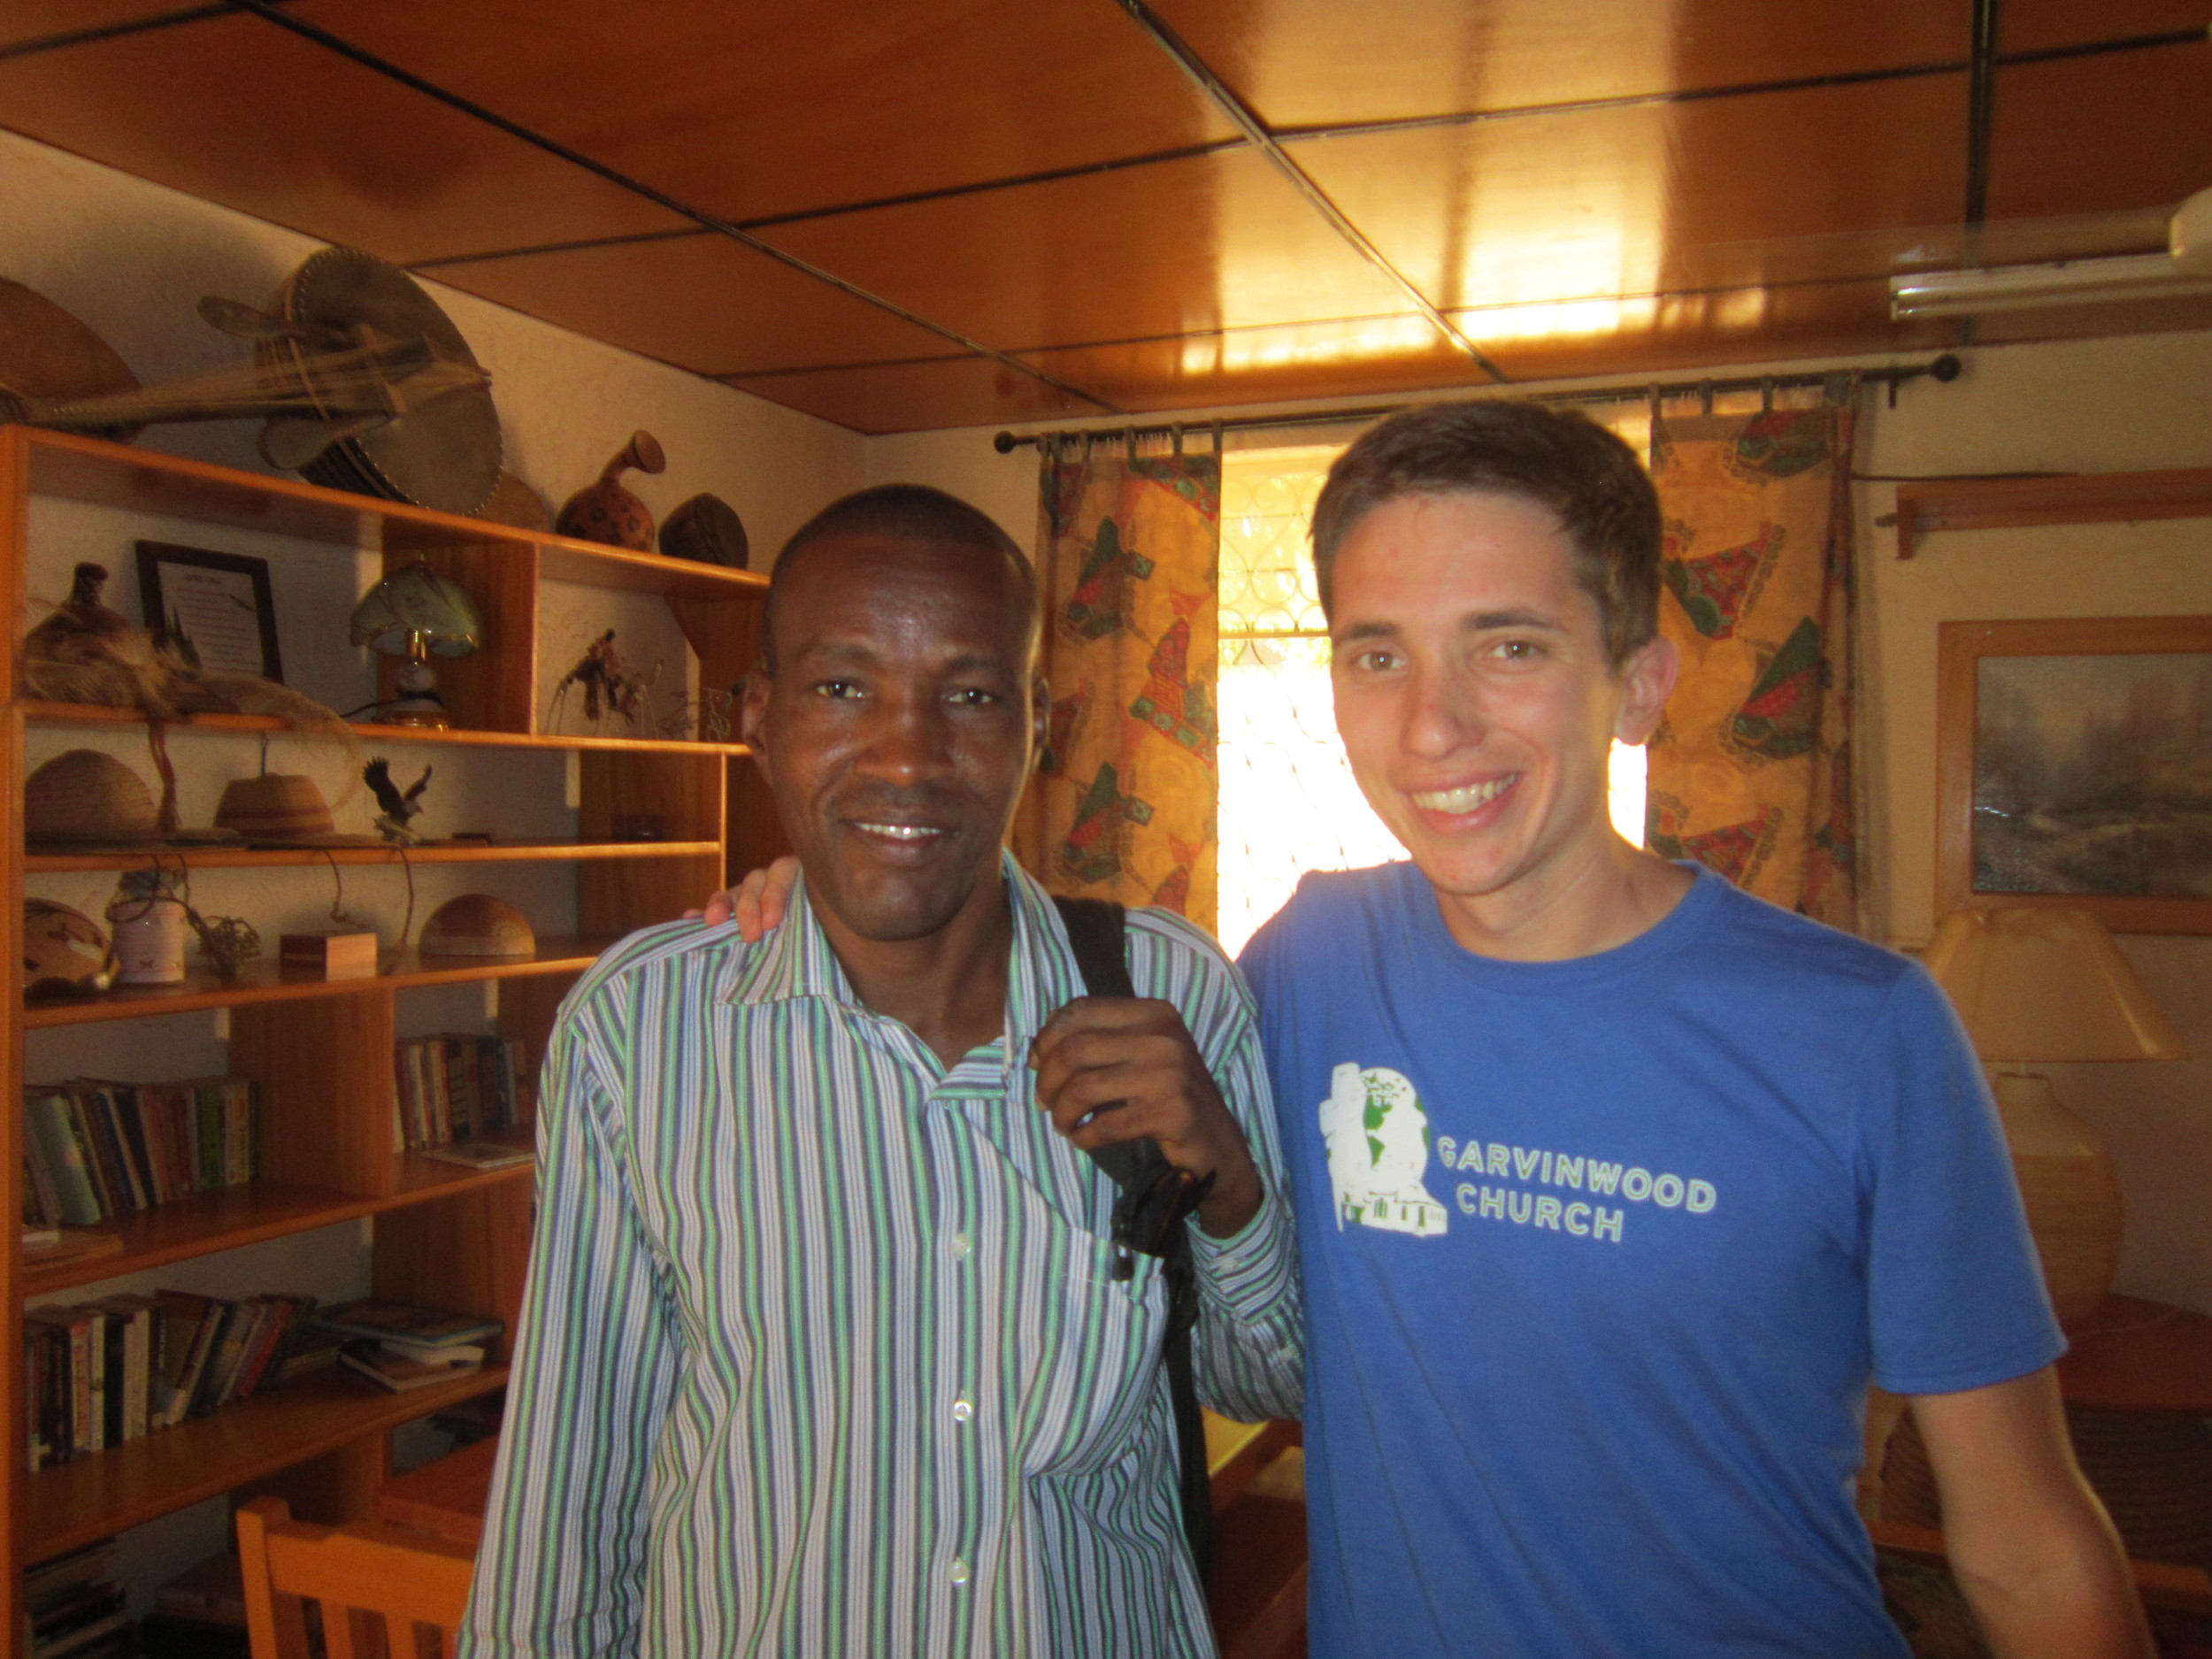 Me with my translator on my most recent trip to Africa at the end of 2015. Such great hospitality!